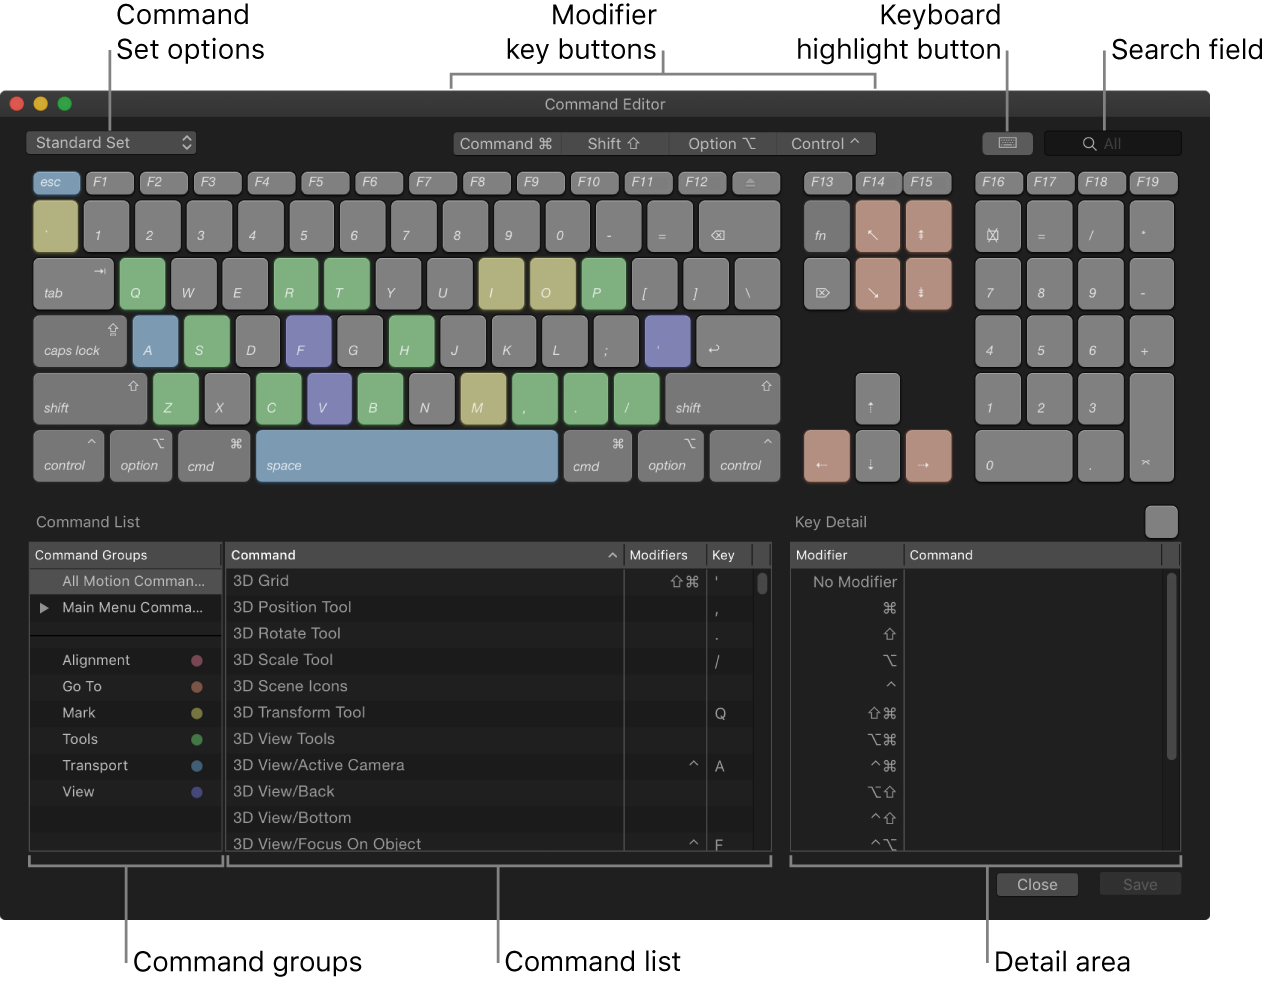 Command Editor showing Command Set options, modifier key buttons, keyboard highlight button, search field, Command groups, Command List, and Key Detail area